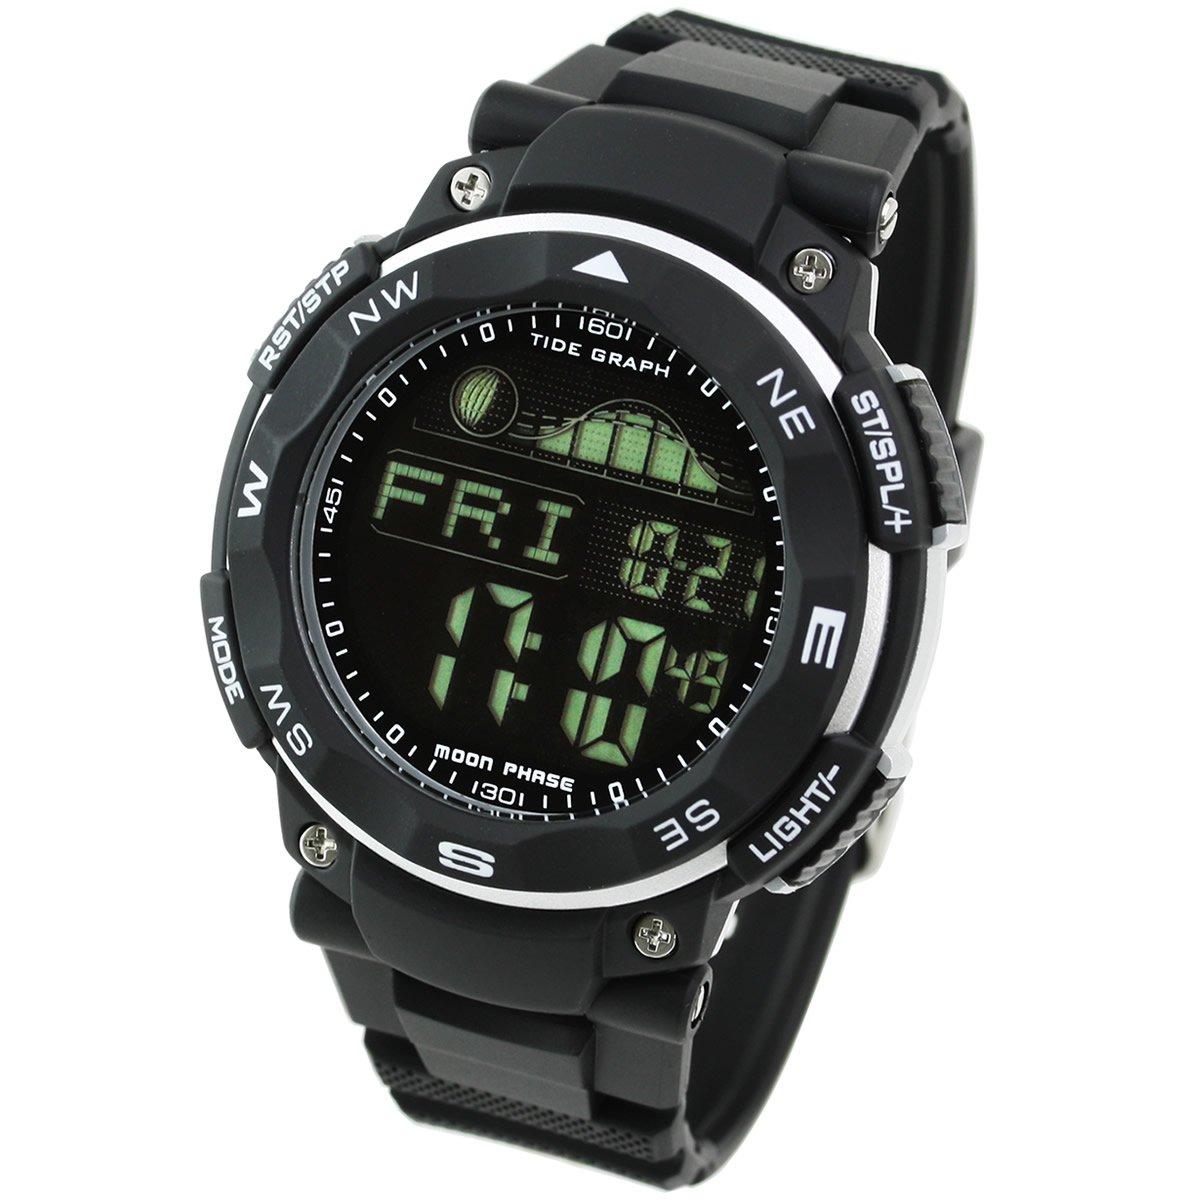 [Lad Weather] Tide Graph 100m Waterproof Moon Phase High & Low Tide Pacer Fishing/Surfing Men's Watch